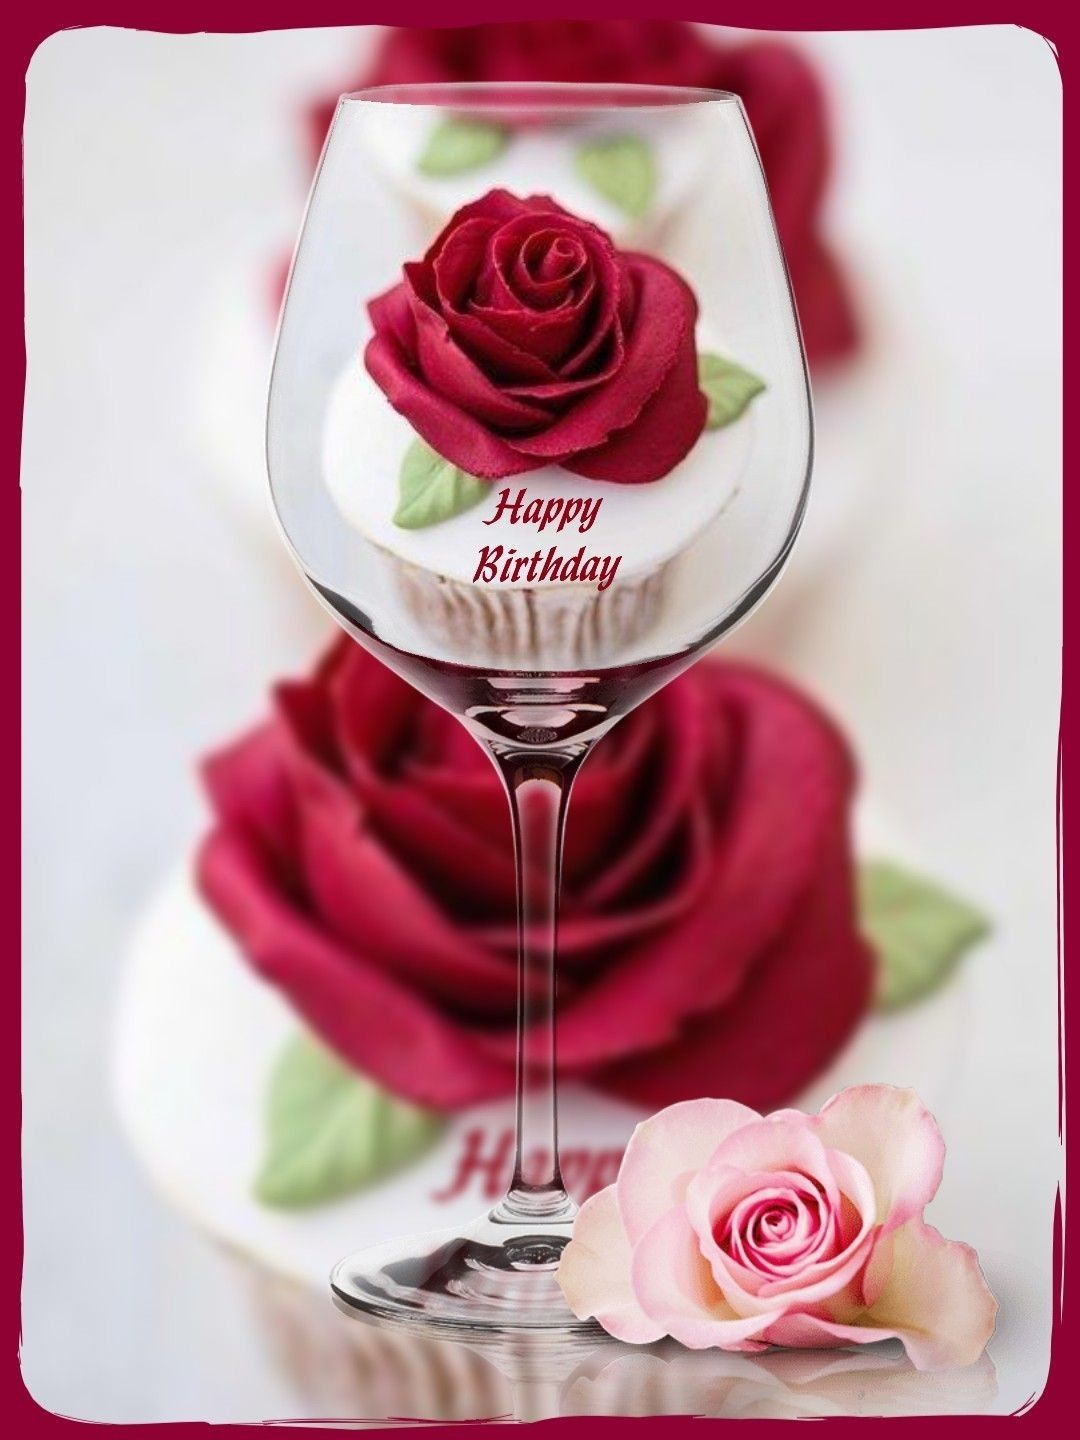 Pin By Sonal Rajani On Birthday Pinterest Birthday Happy